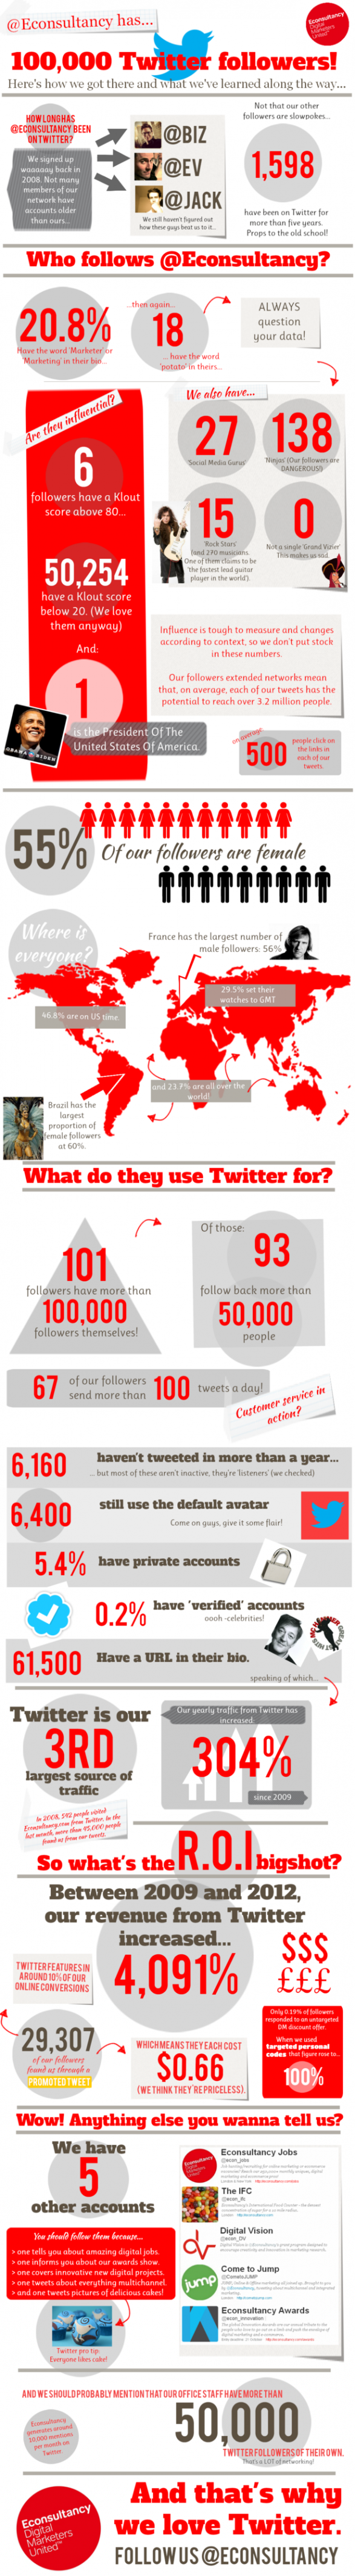 How to Twitter for business - case study